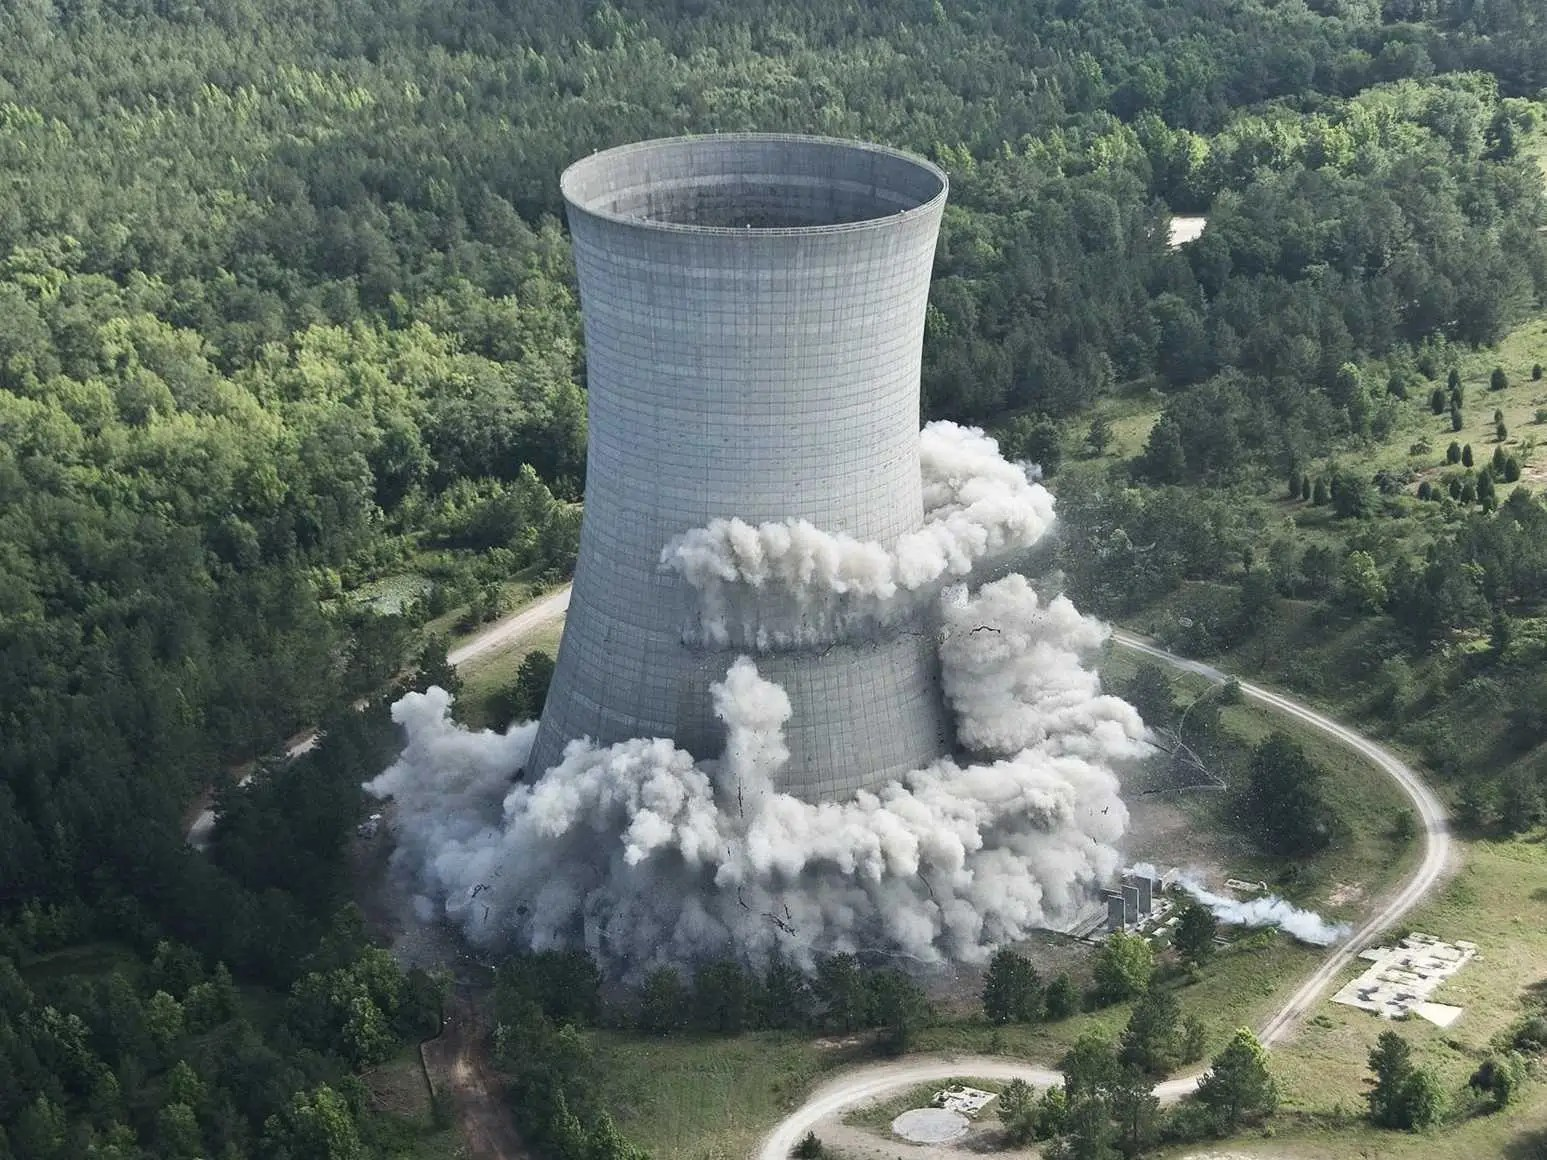 exploding cooling tower nucelar plant imploding collapsing controlled demolition